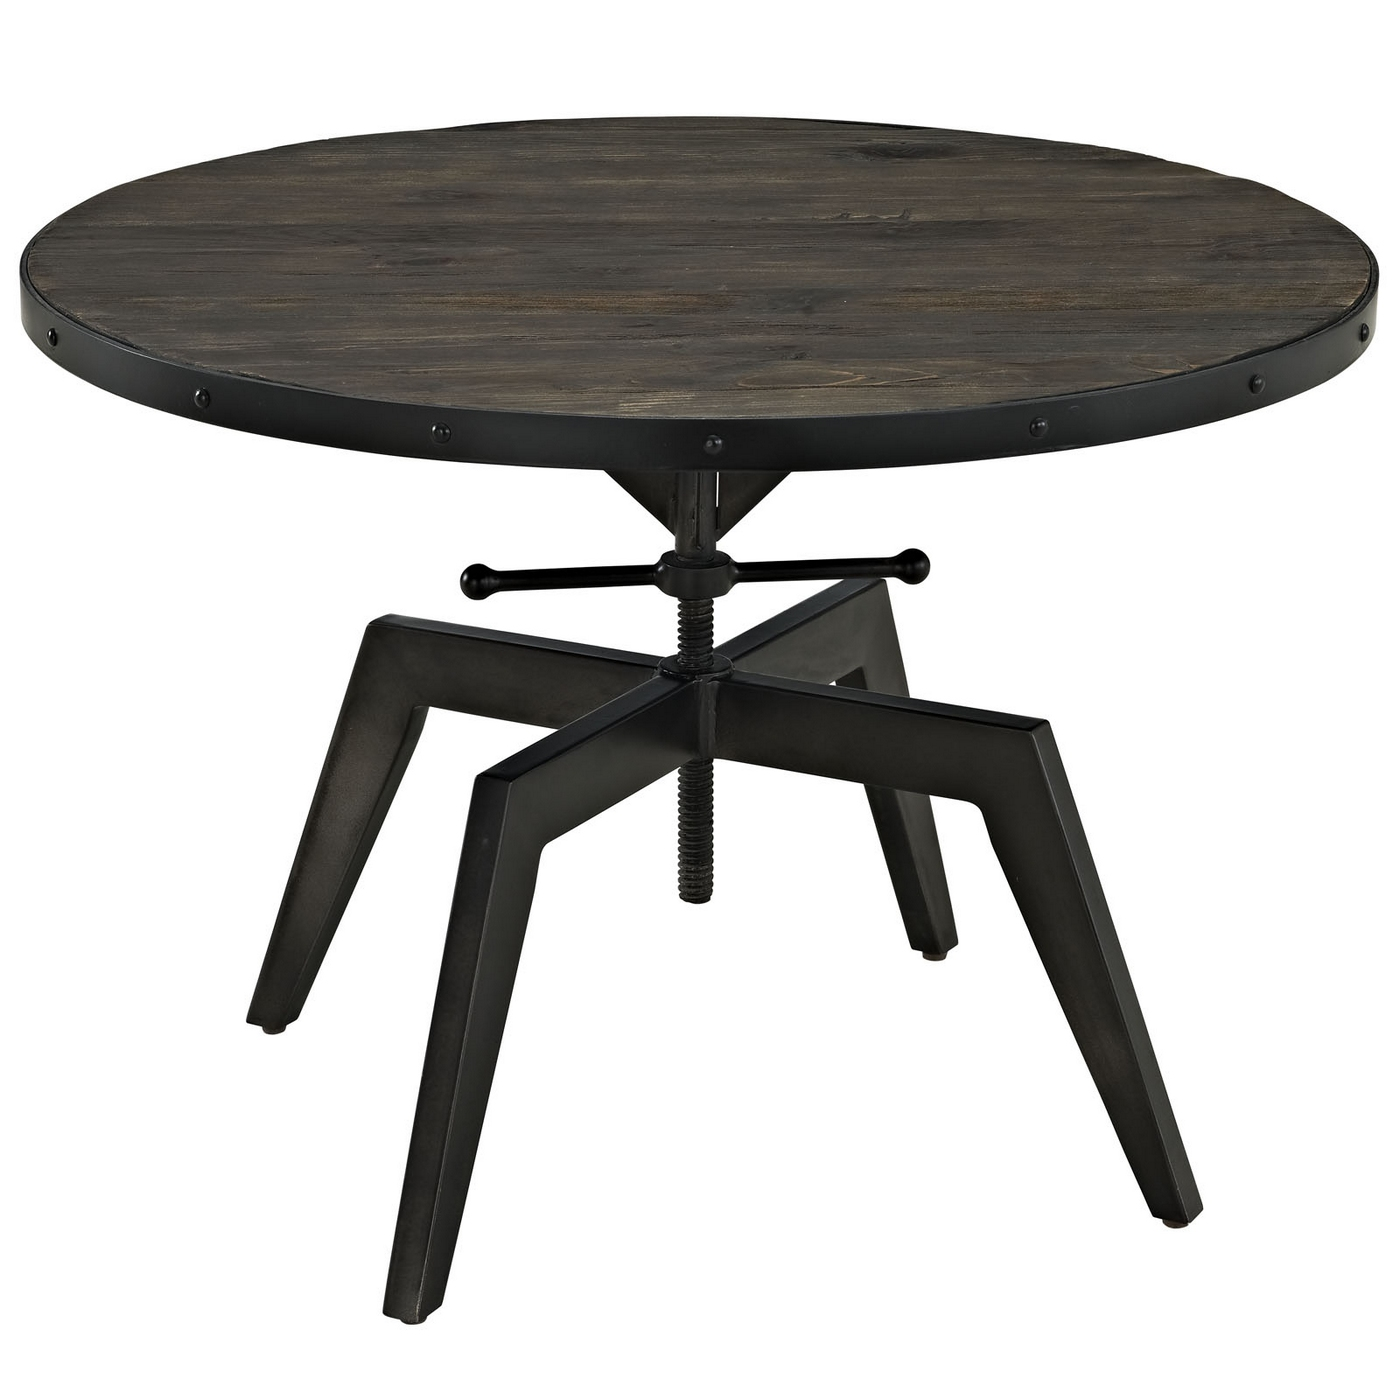 Round Metal Coffee Table Bases: Grasp Industrial Round Pine Wood Coffee Table With Metal